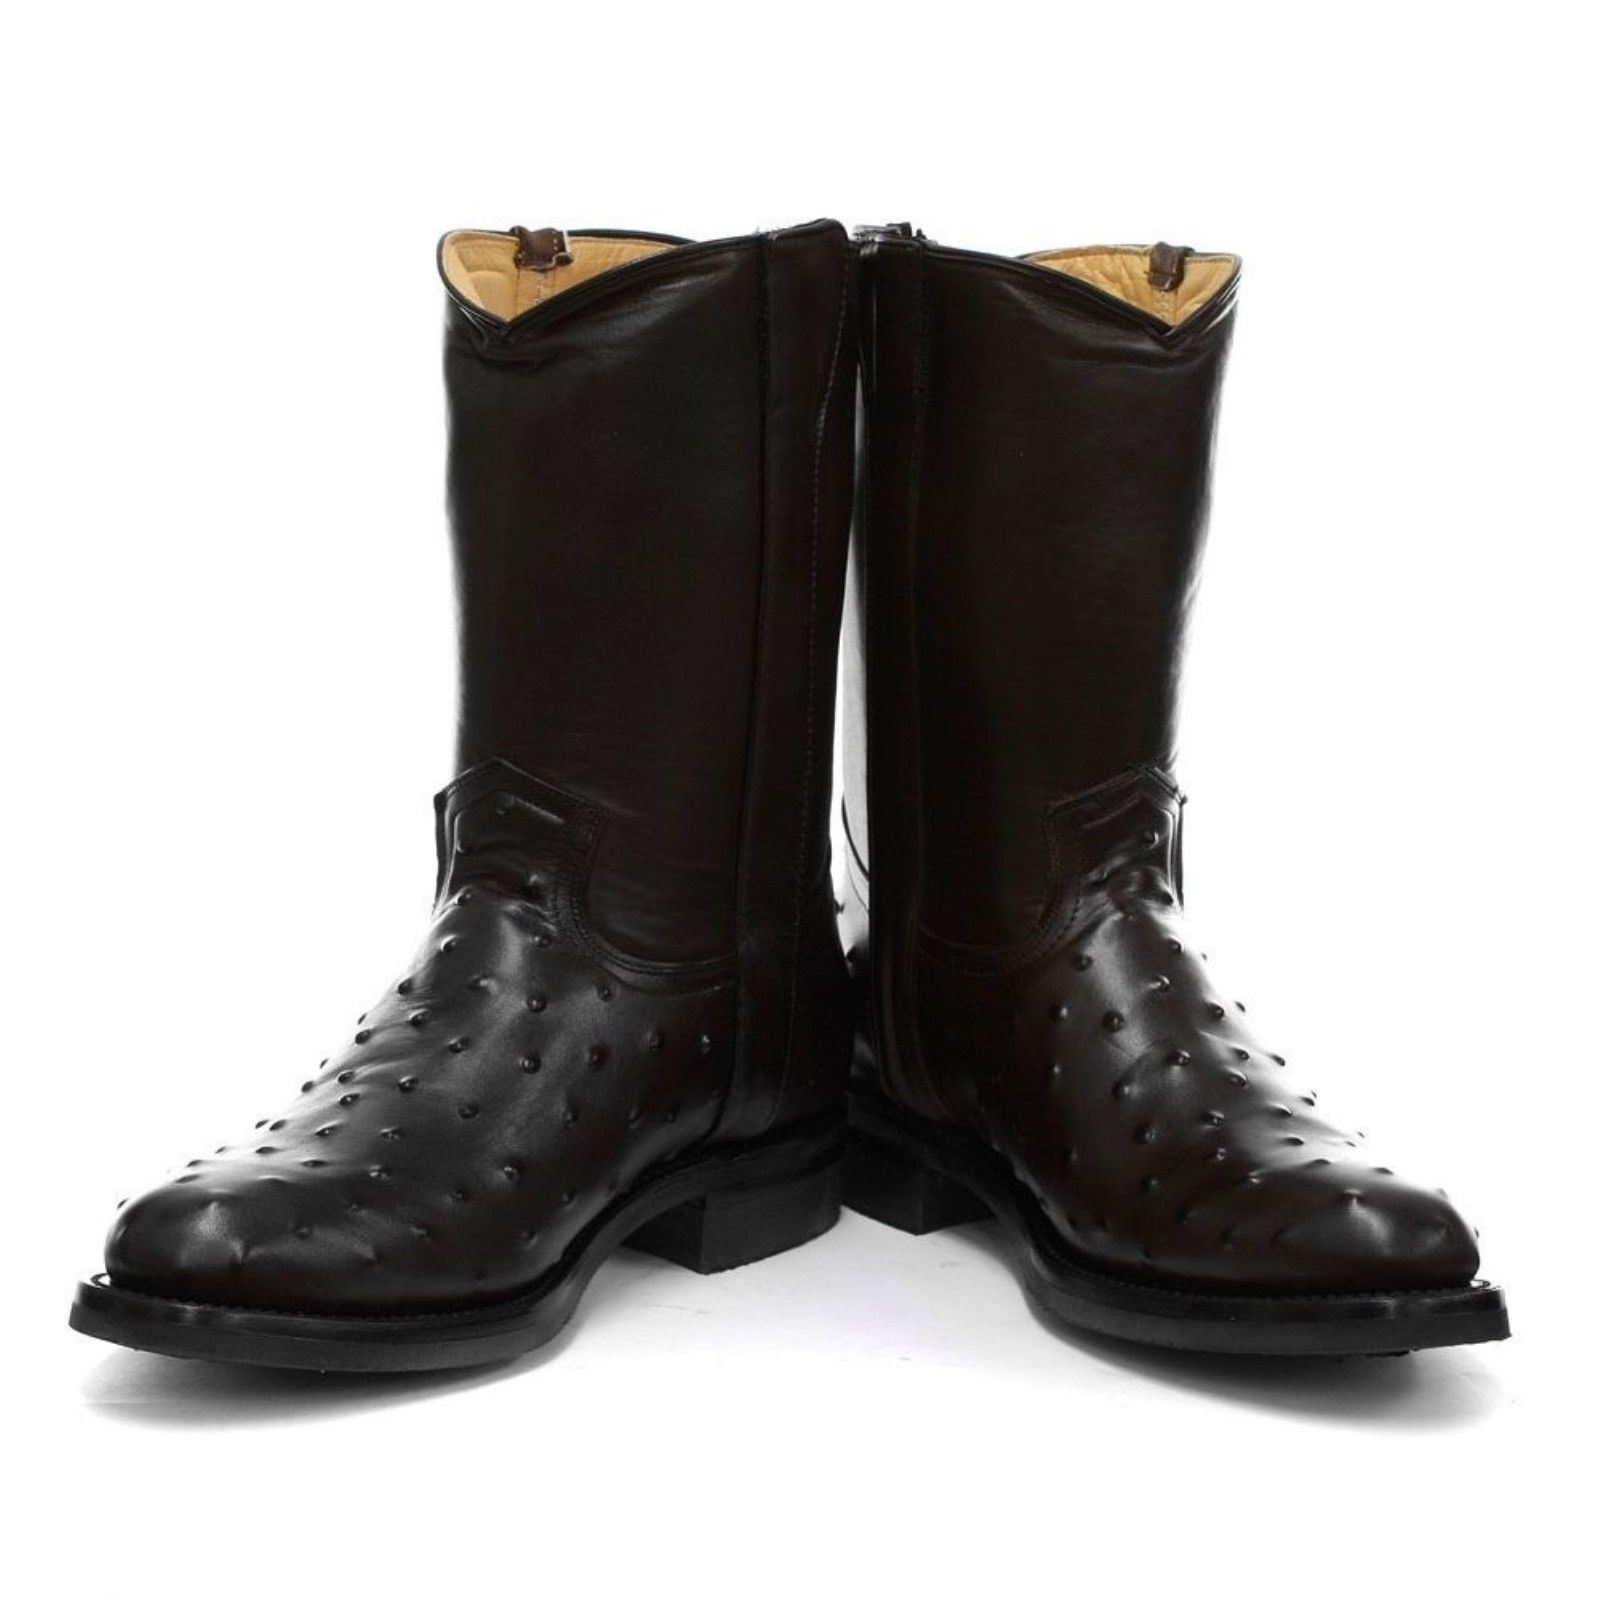 cowboy New pelle Grinders western nera in Vegas Boot da Stivali Mens pelle in zwfxCqwdP